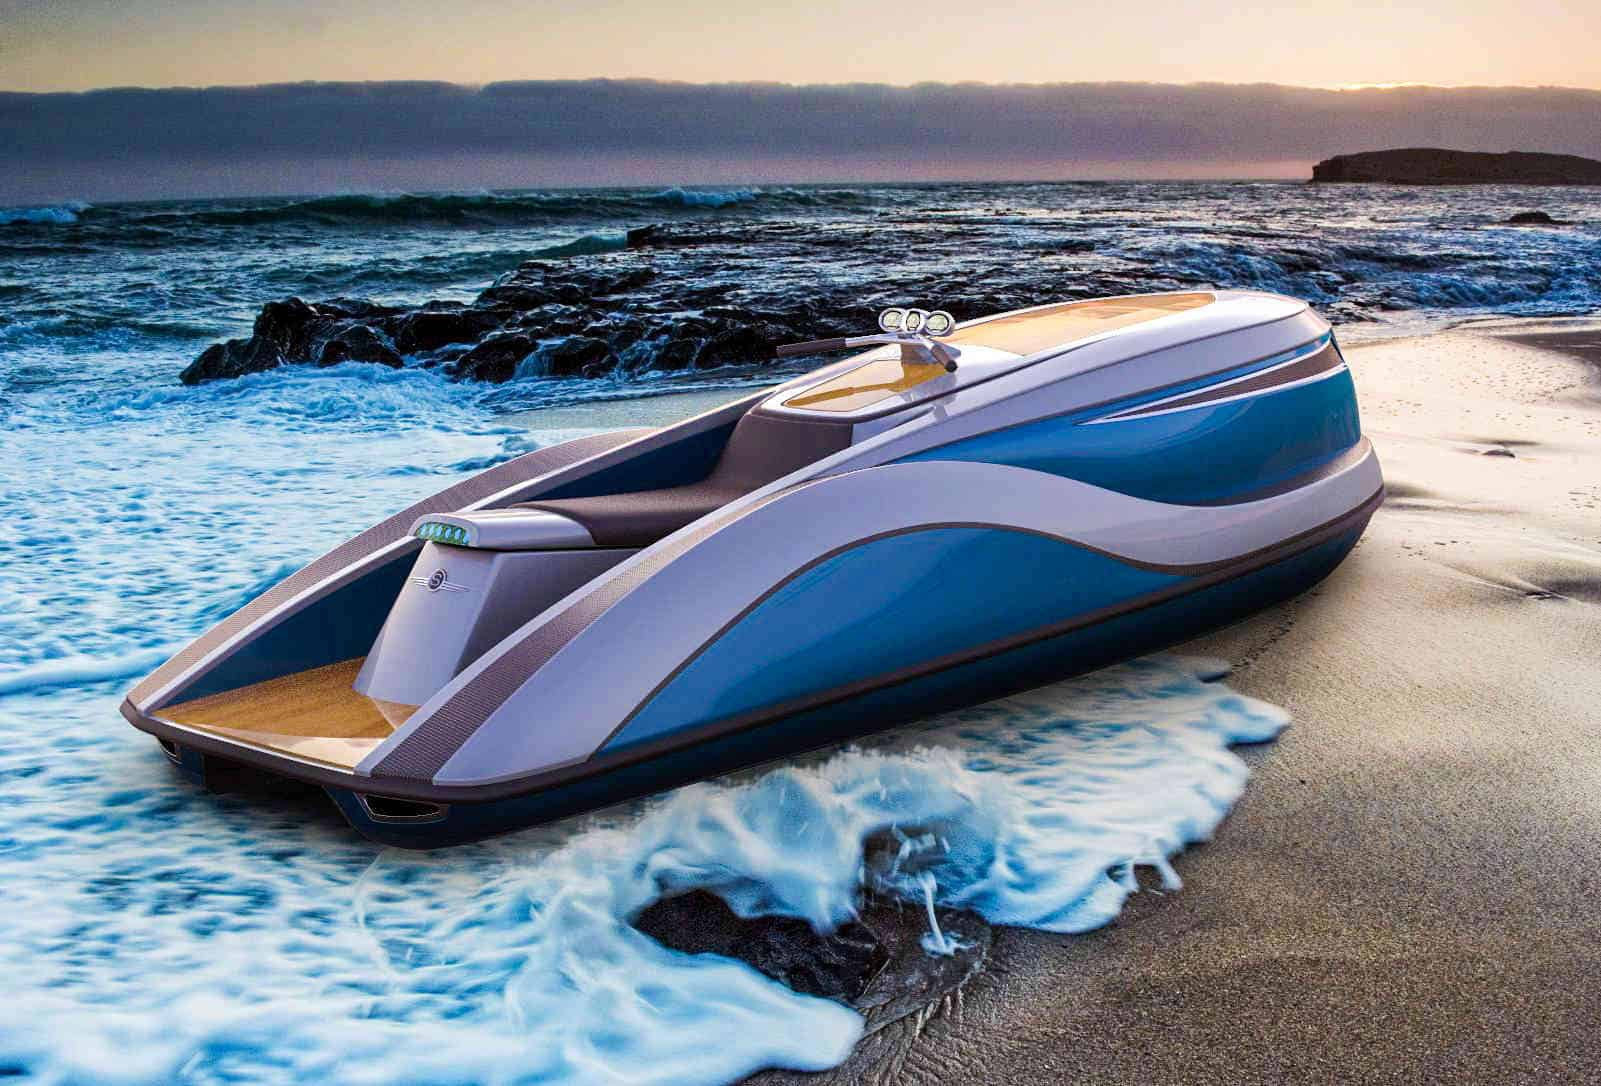 Corvette Jet Ski is Like Riding an Orca with Rabies! The Strand Craft V8 Wet Rod Jet Ski dragster is so ridiculous...you'll wish you had two.